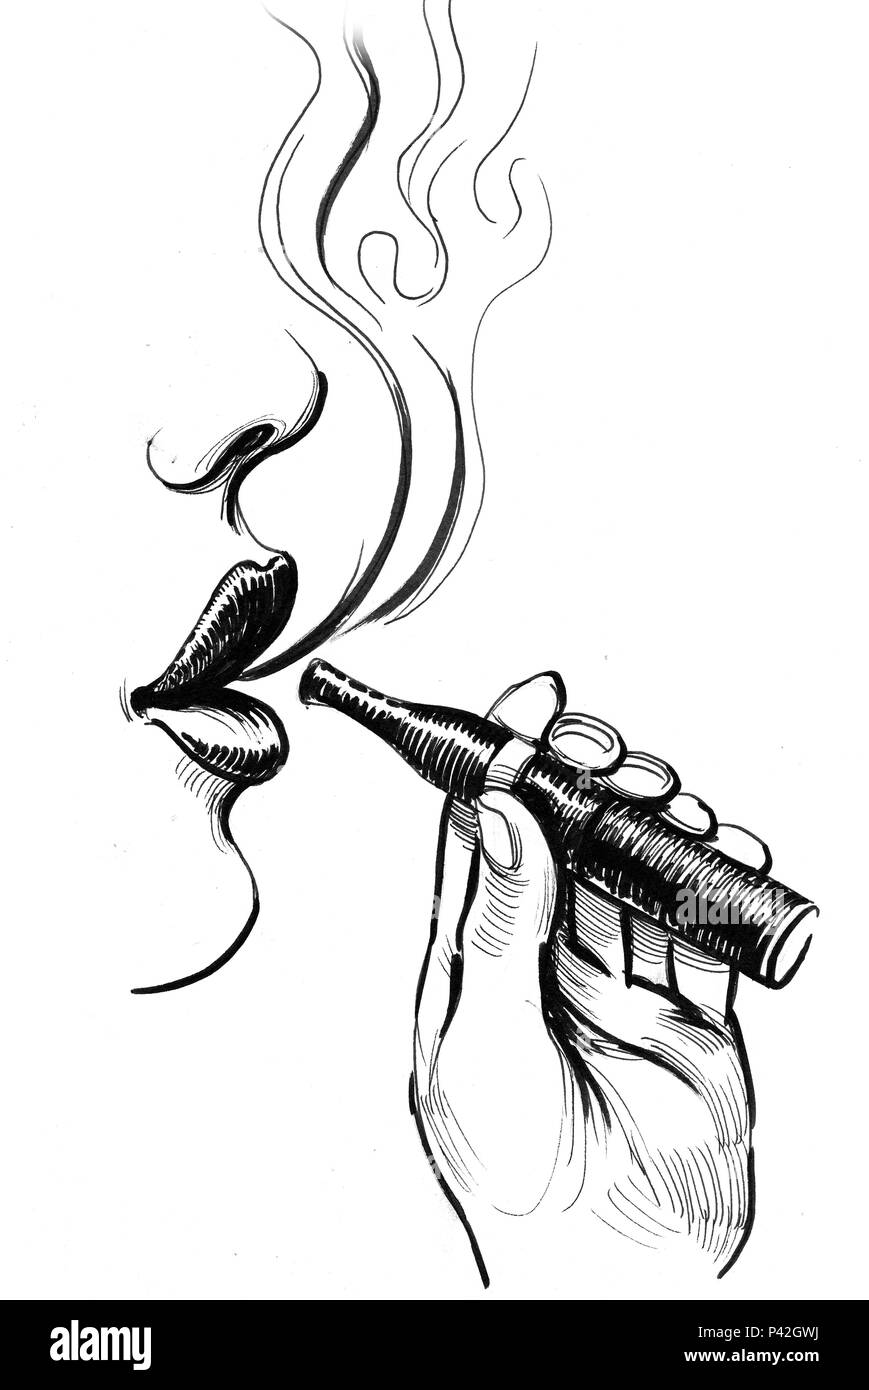 Lips and holding a vaporizer. Ink black and white illustration - Stock Image